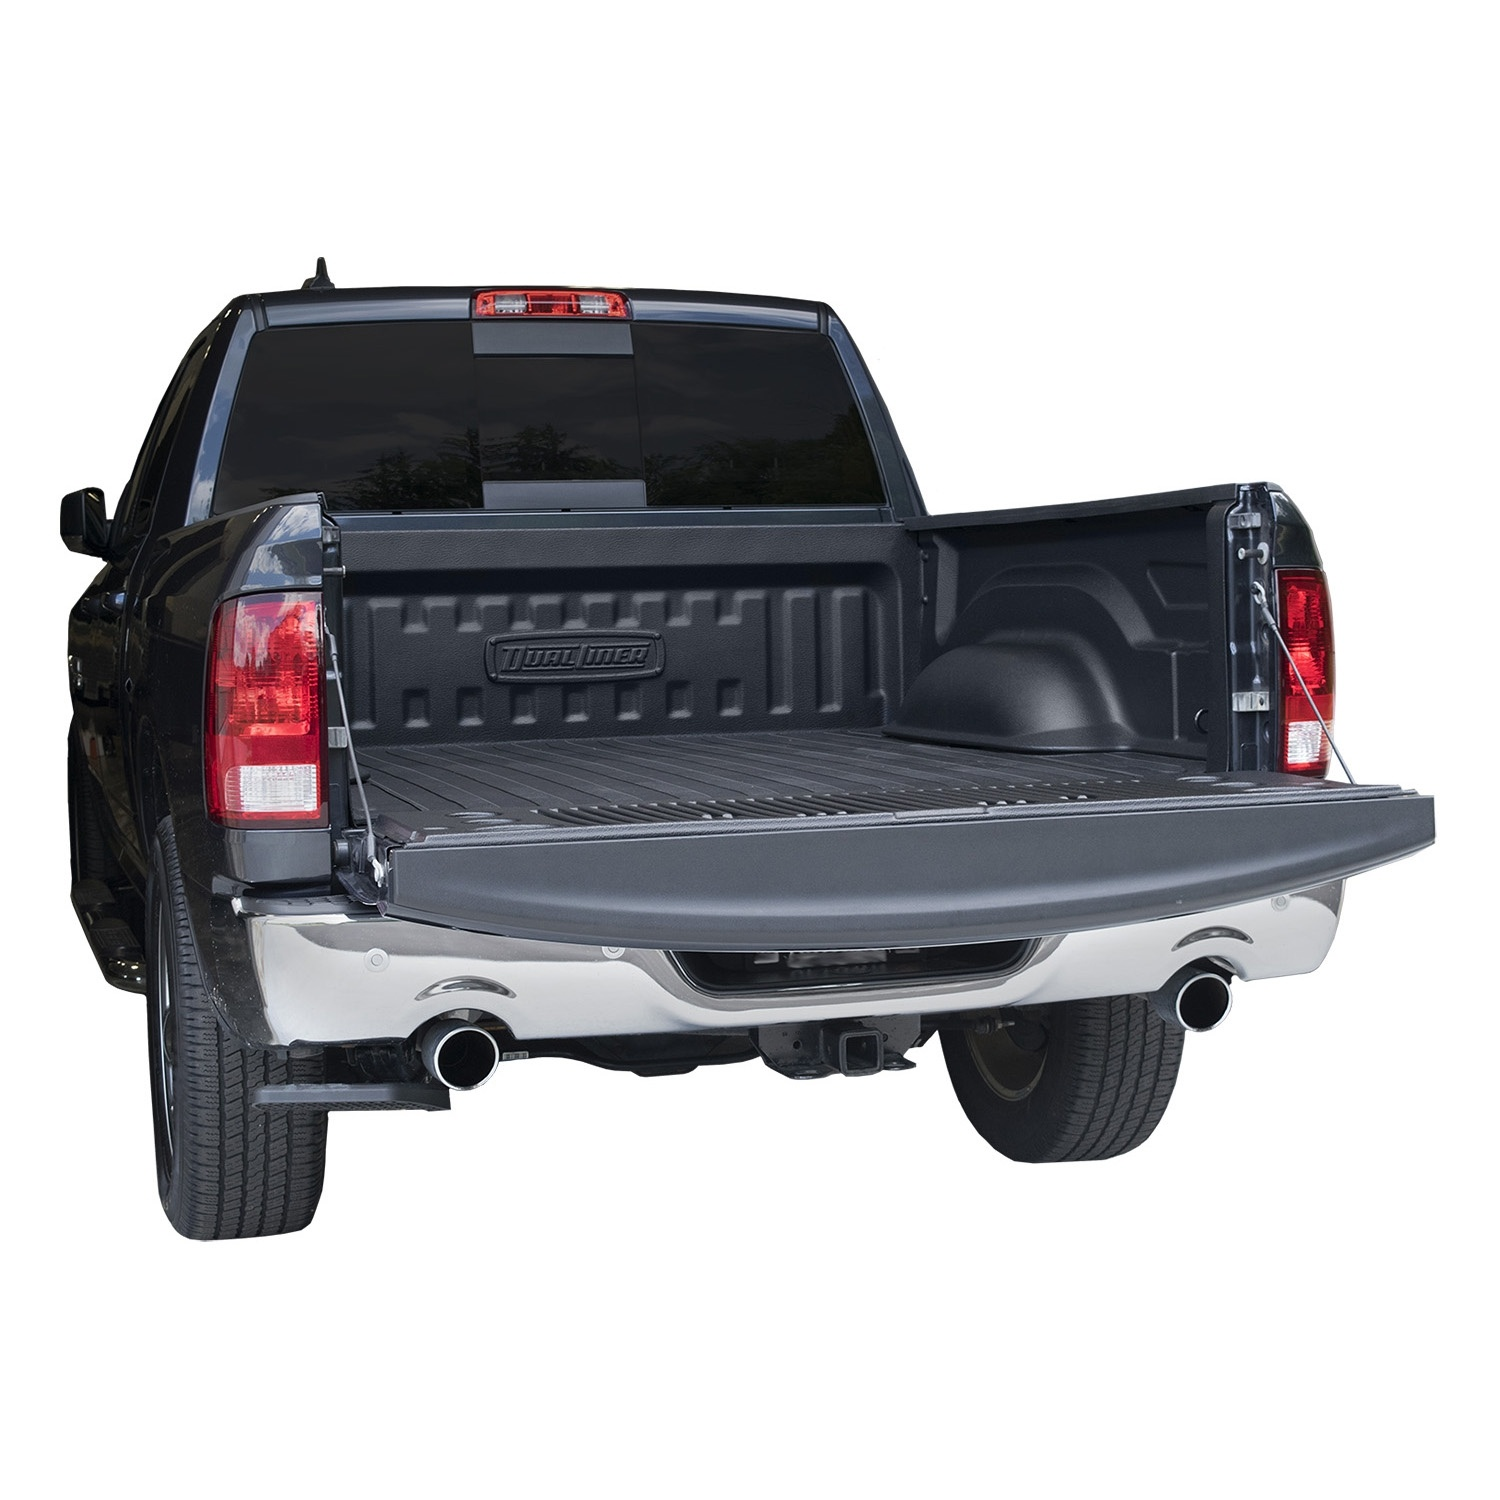 Ram 1500 Bed Liner For 2009 To 2015 Dodge Truck